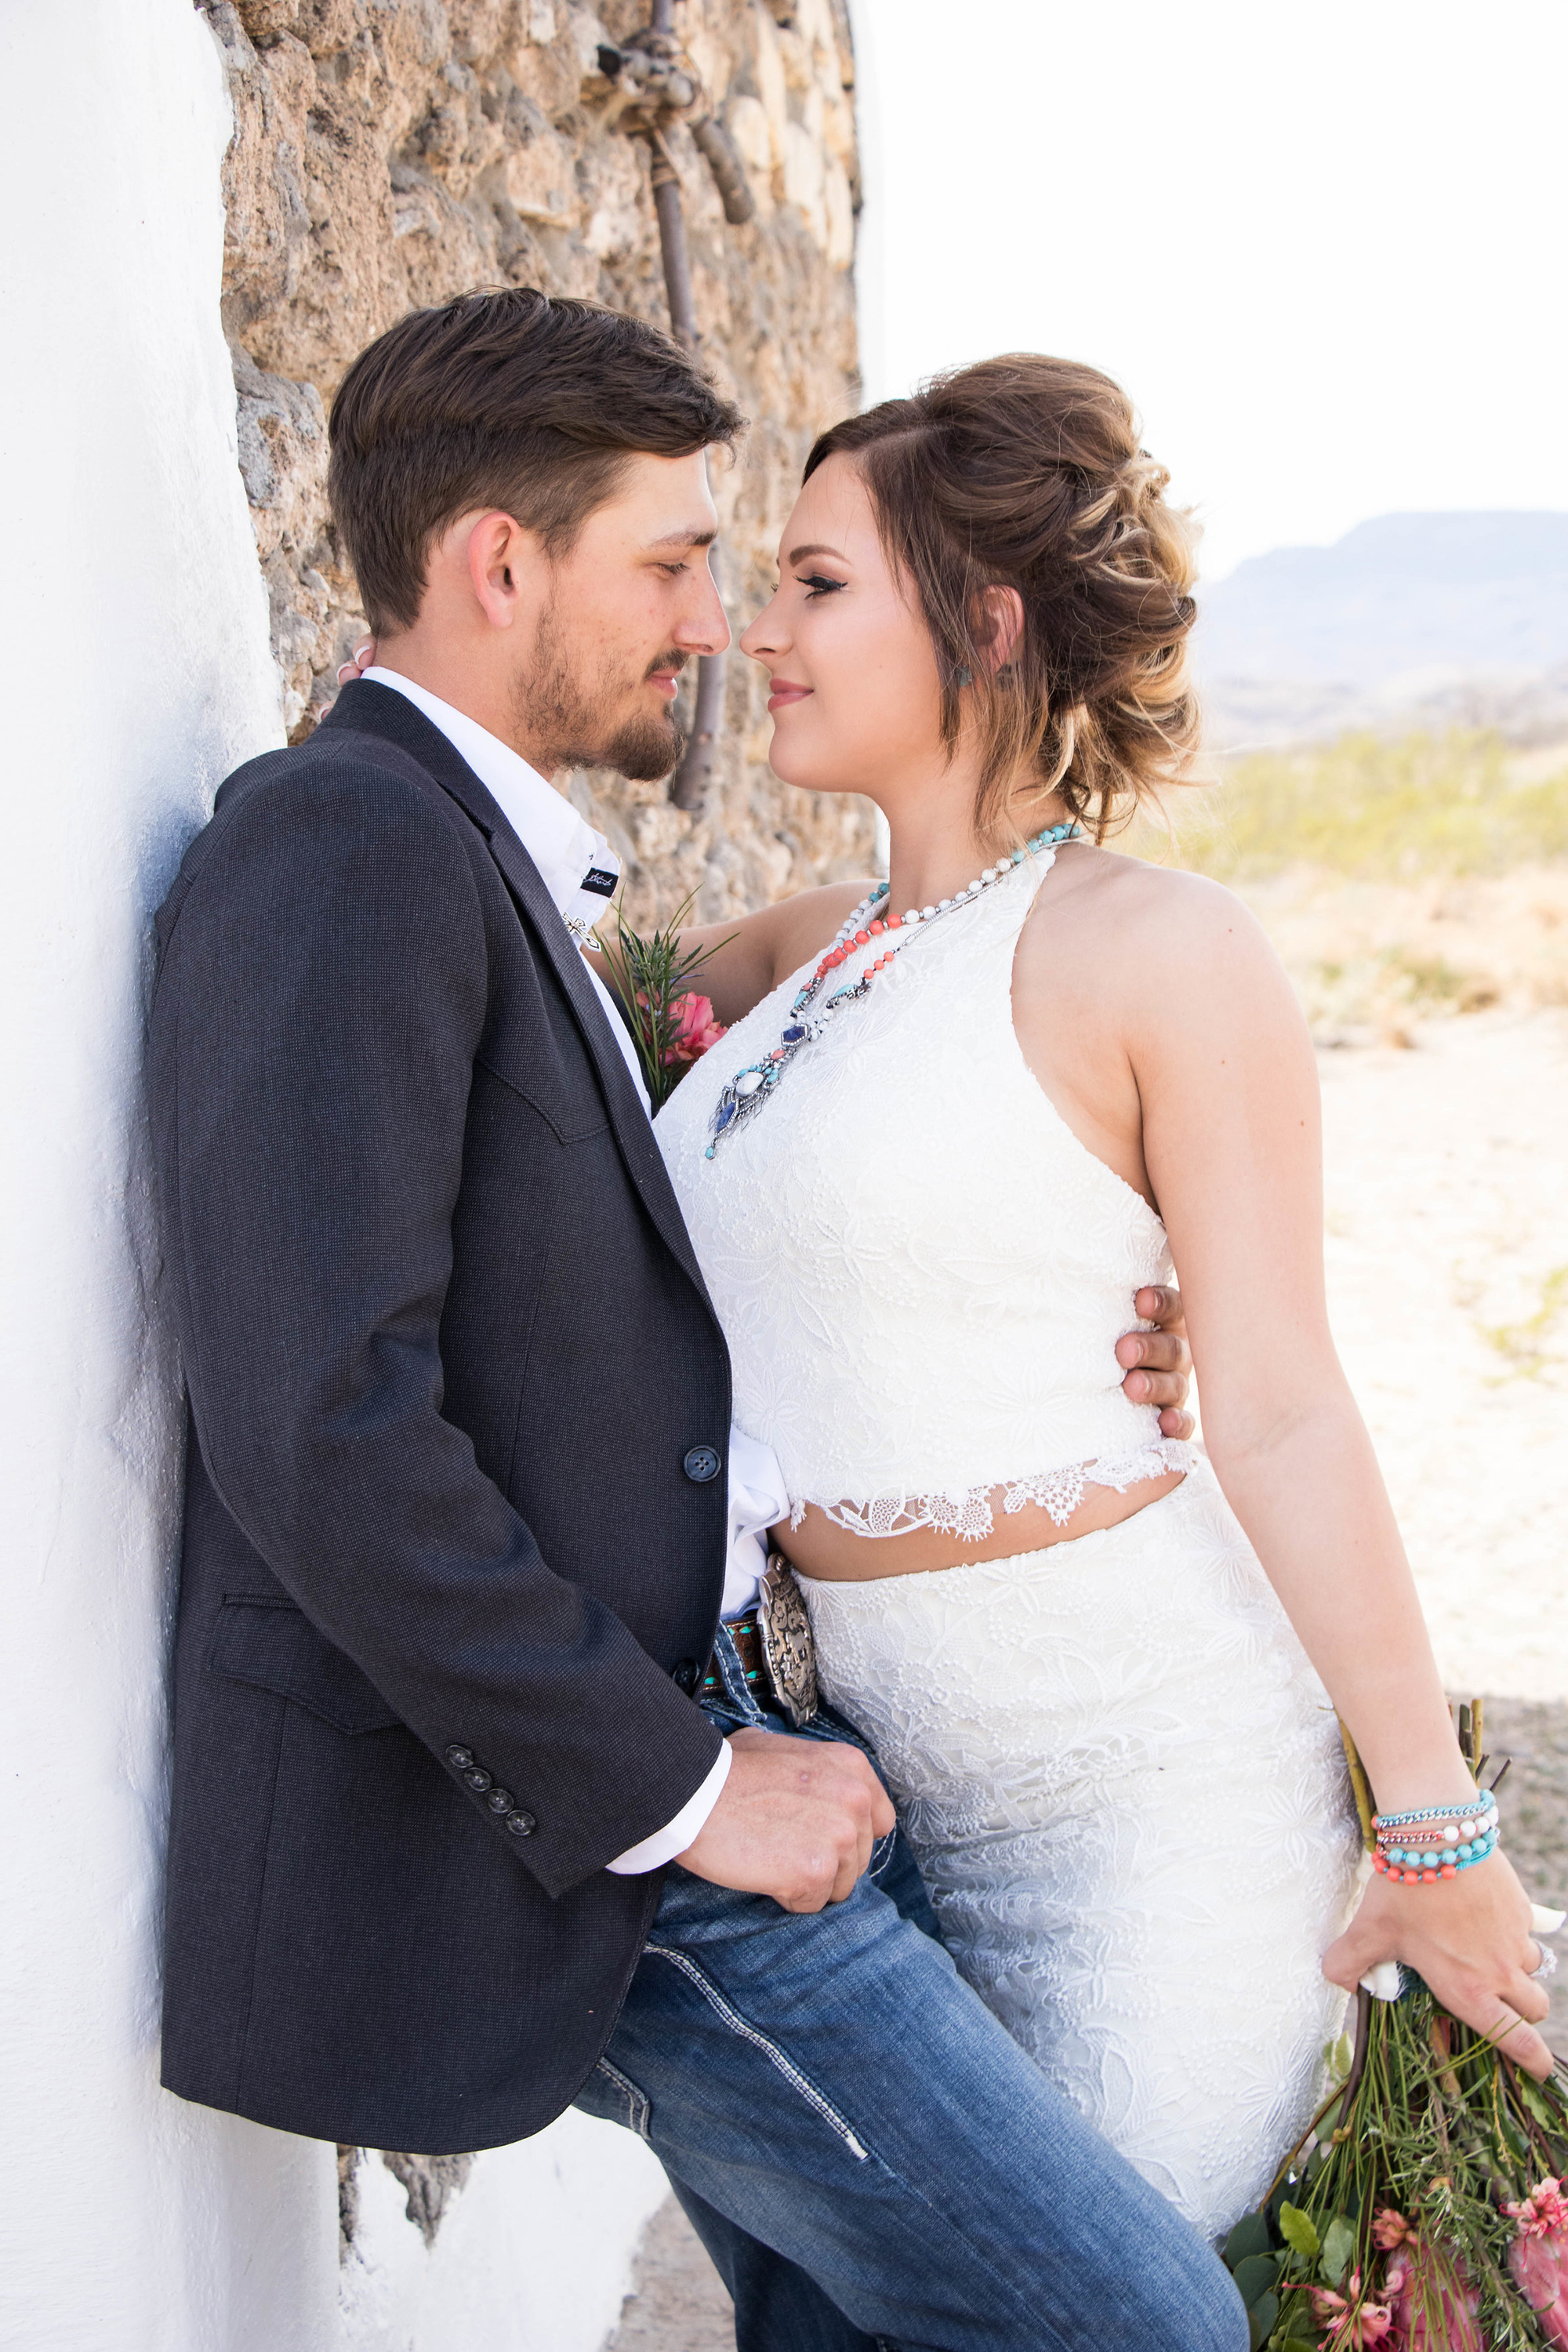 Style 2241 Heather | Casablanca Bridal Desert Bohemian Southwest Styled Shoot by Mandy Lorraine